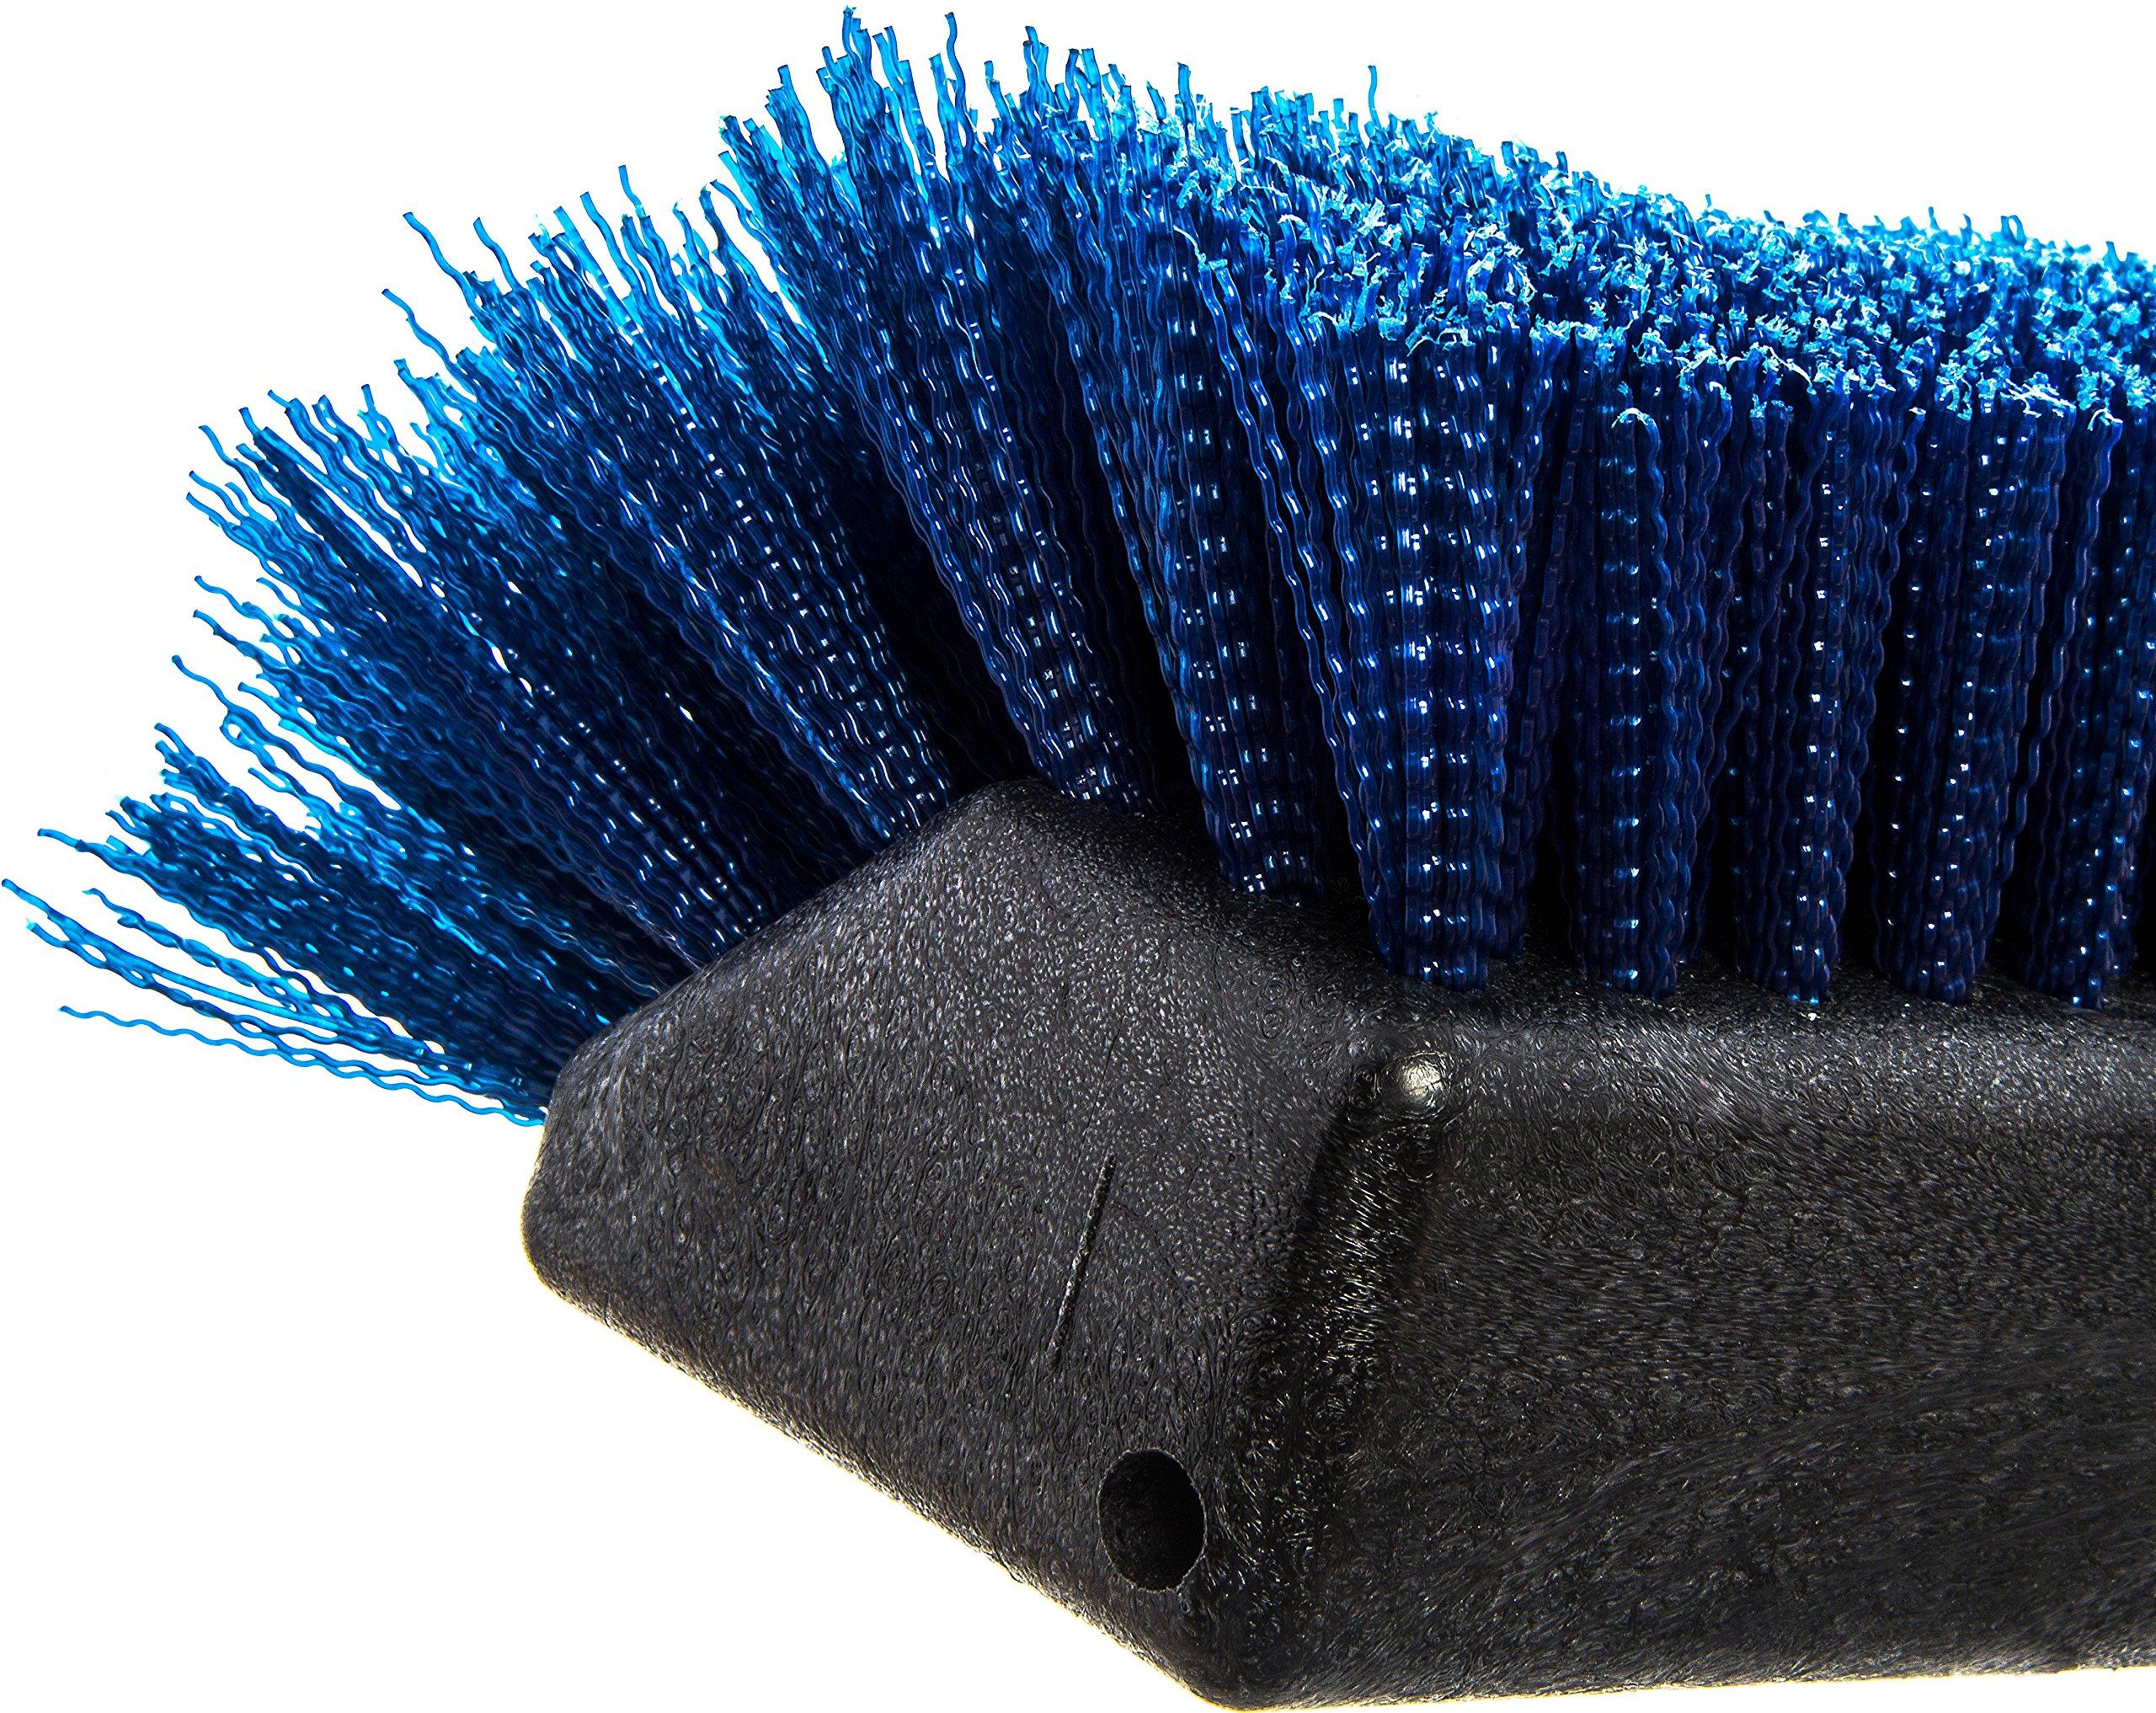 Carlisle 4042514 Commercial Boot 'N Shoe Brush Replacement, Blue (Pack of 12) by Carlisle (Image #3)